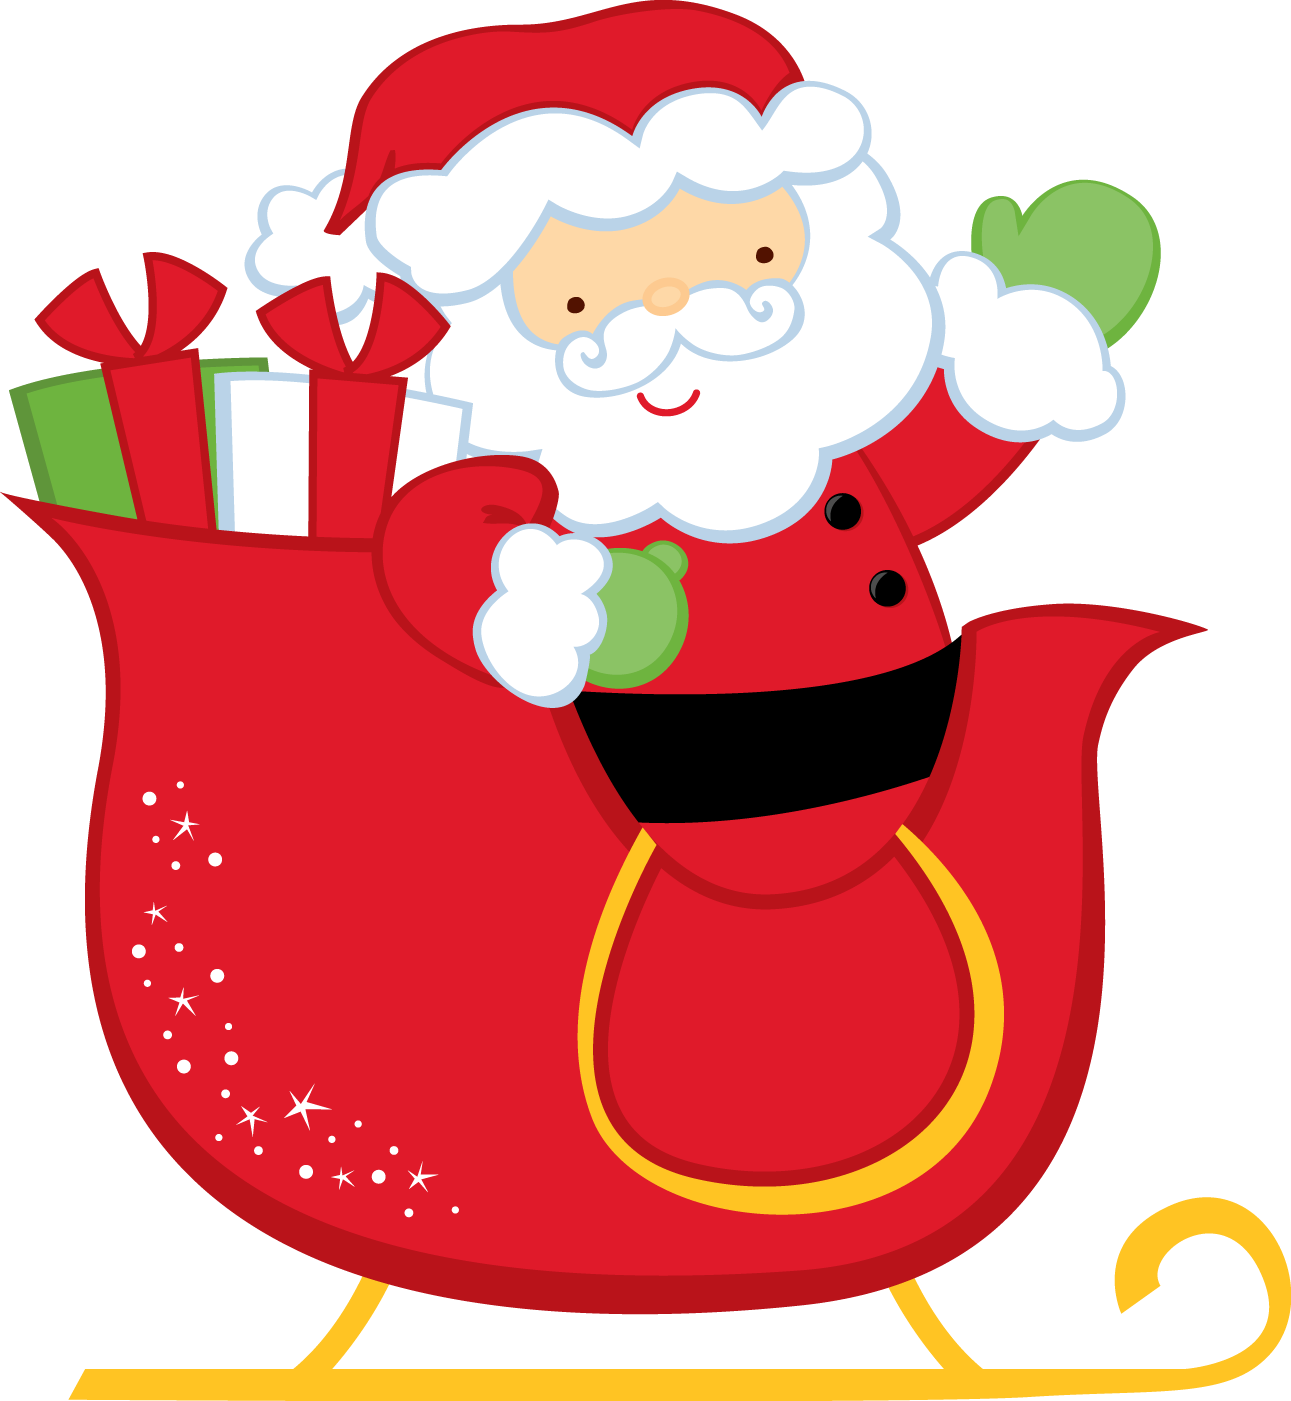 christmas santa and sleigh clip art navidad pinterest clip art rh pinterest com clipart of santa and his sleigh santa flying in sleigh clipart